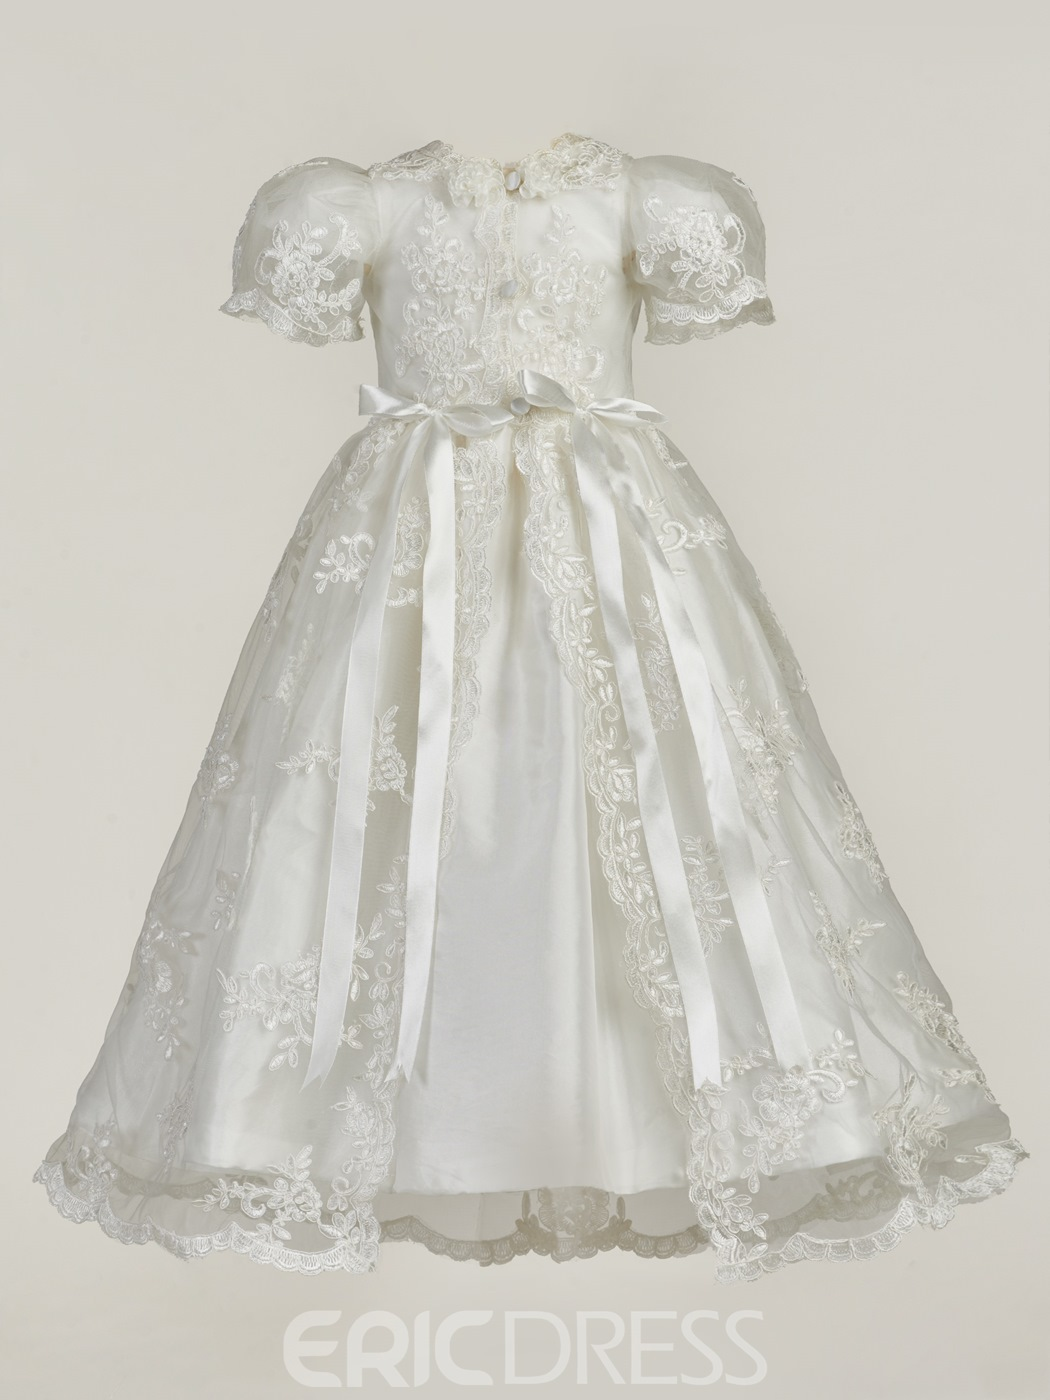 Ericdress Lace Baby Girl Christening Baptism Gown with Bonnet ...